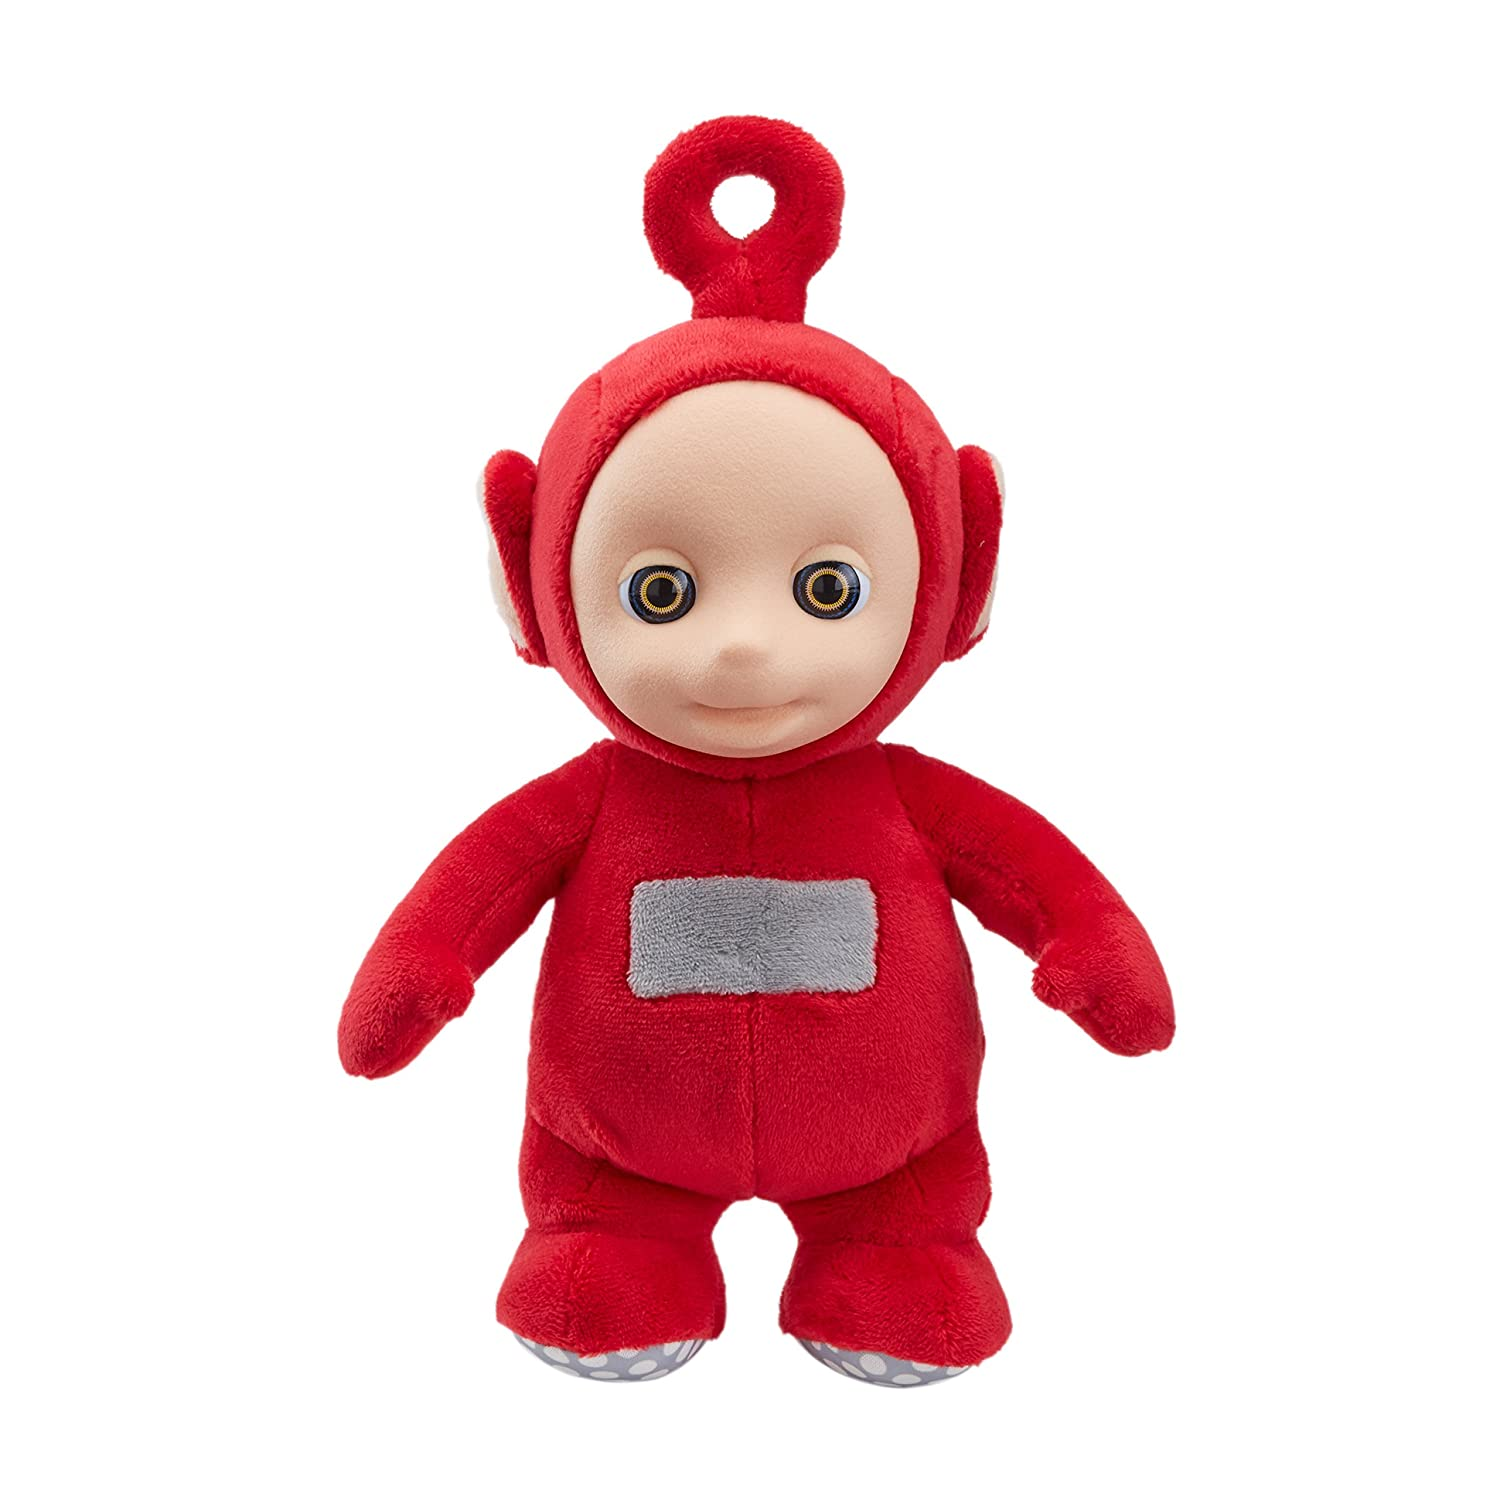 Teletubbies 26cm Talking Po Soft Plush Toy by Character Options 06107